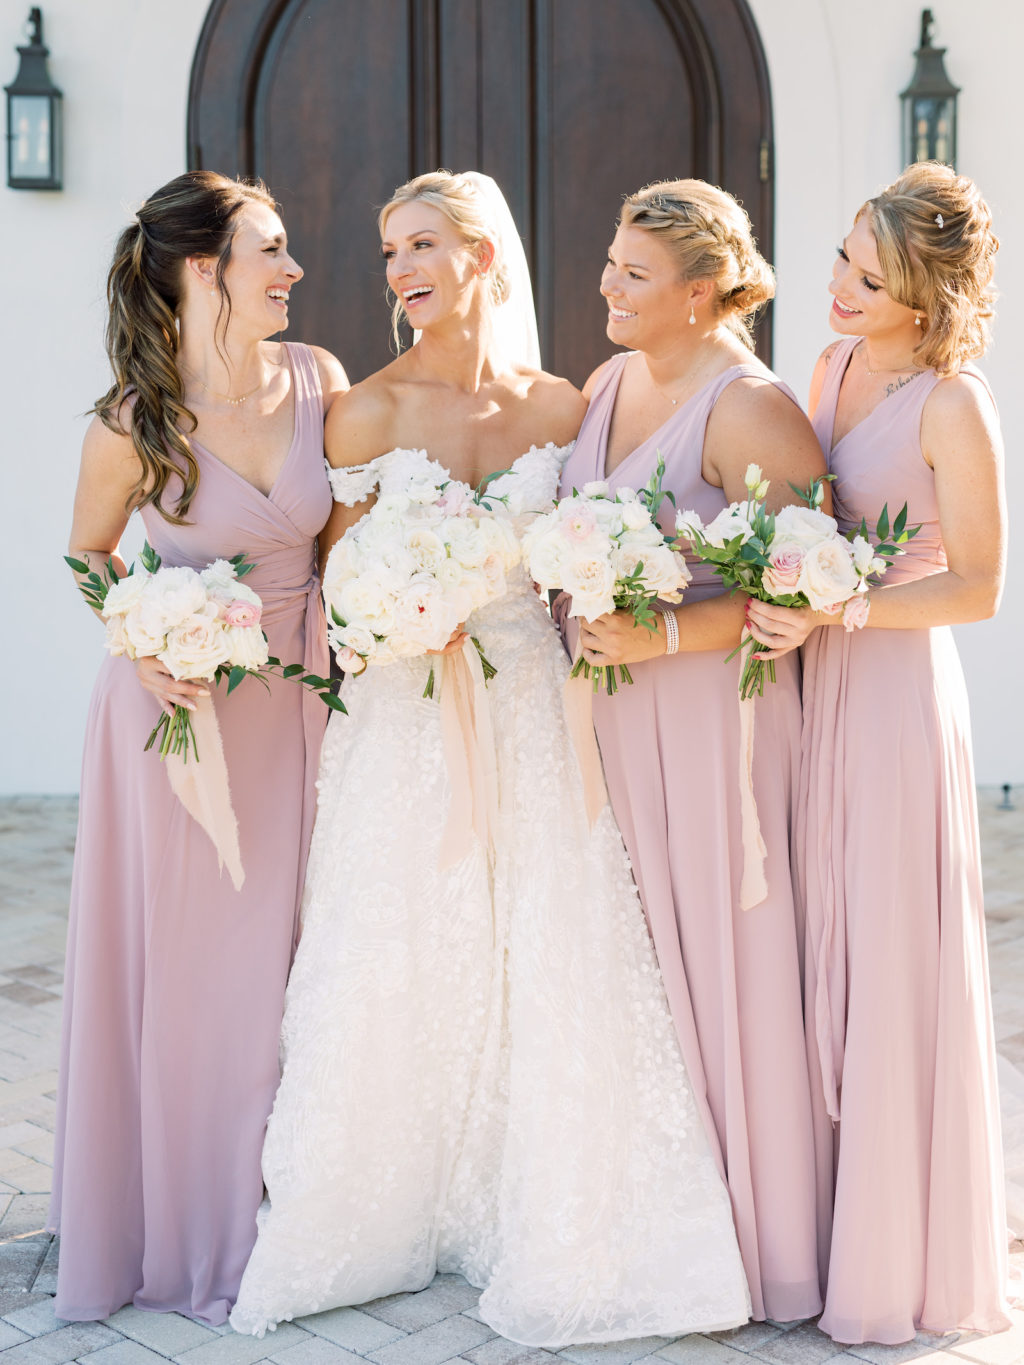 Timeless Romantic Bride Wearing Floral Lace Over Tulle Off the Shoulder Ballgown Allure Couture Bridal Wedding Dress, Bridesmaids in Mauve Matching Dresses Holding Classic Ivory and Blush Pink Roses Floral Bouquets | Tampa Bay Wedding Hair and Makeup Artist Femme Akoi Beauty Studio